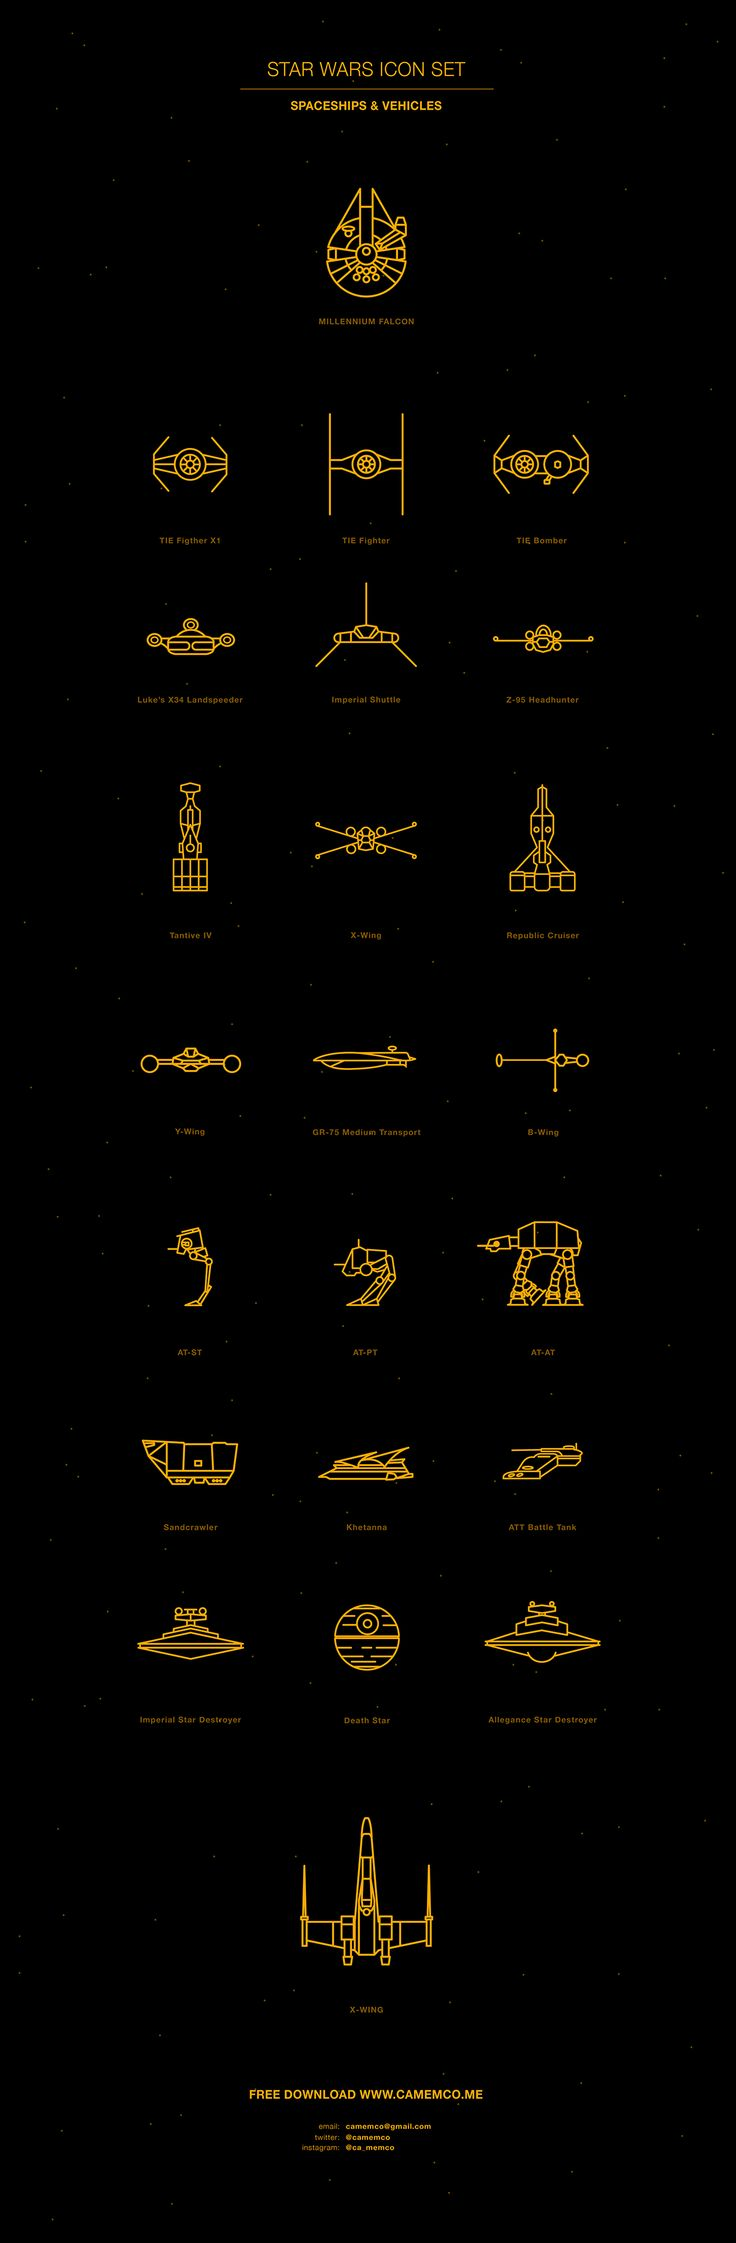 """Star Wars Vectors"" by Carolina Mem Correa de Sa, from Brussels, Belgium 